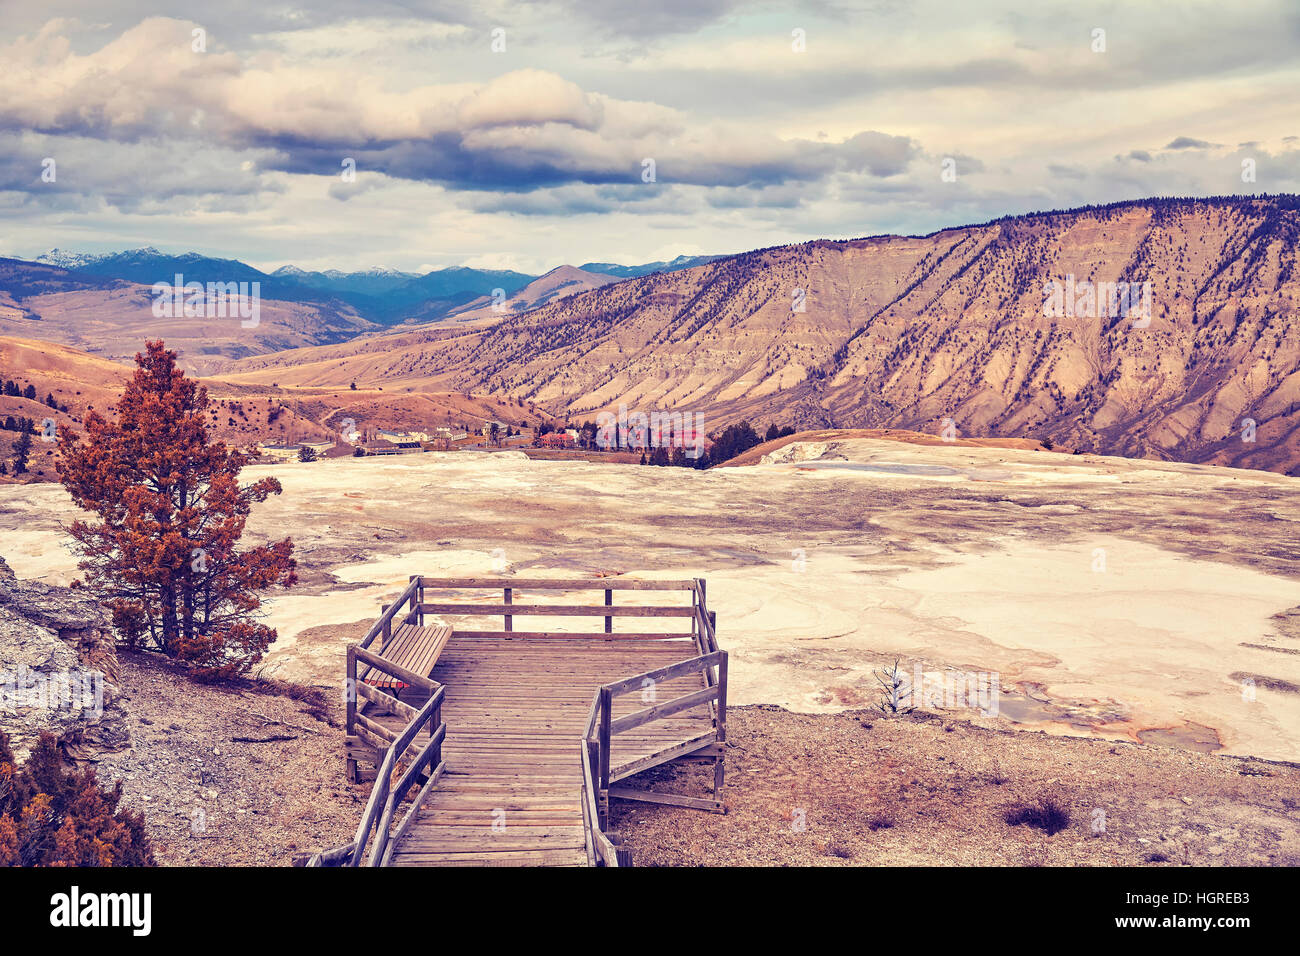 Farbe getönt Hot Springs im Yellowstone-Nationalpark, Wyoming, USA. Stockbild